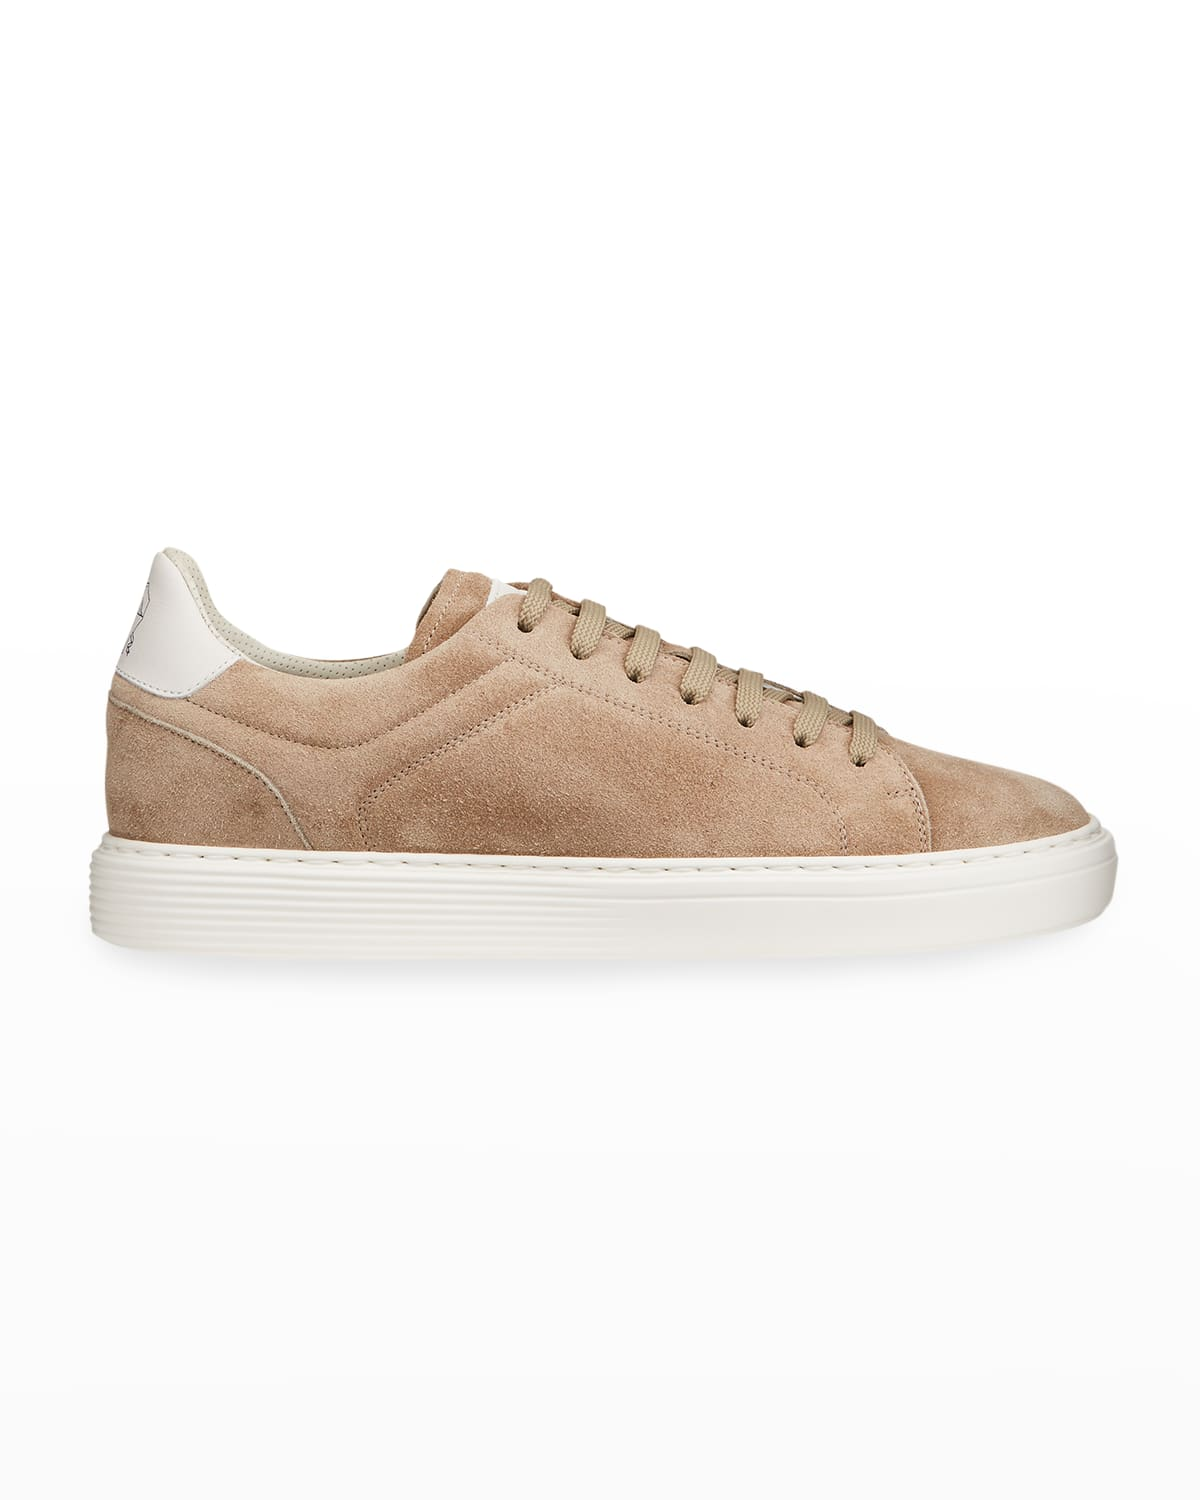 Men's Airsole Two-Tone Suede Sneakers